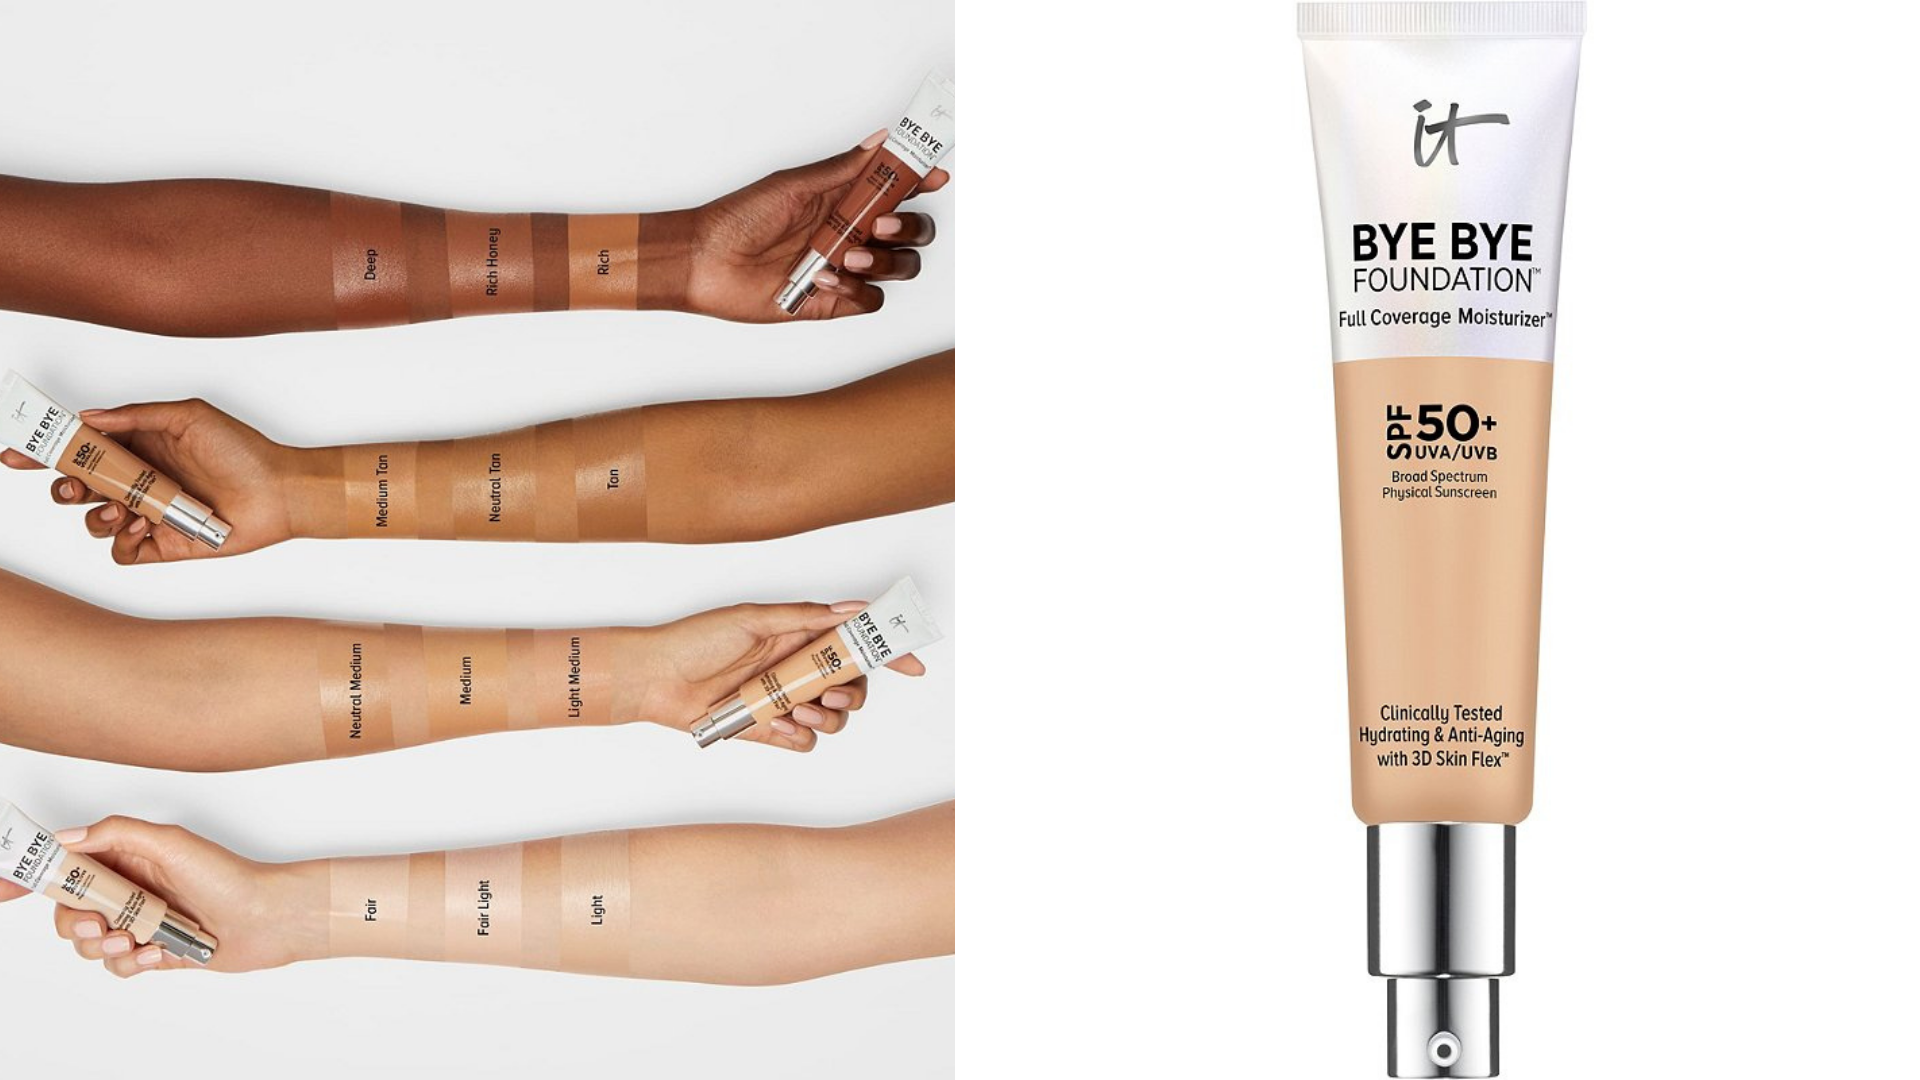 four arms of different skin tones demonstrate the shade range of a foundation.